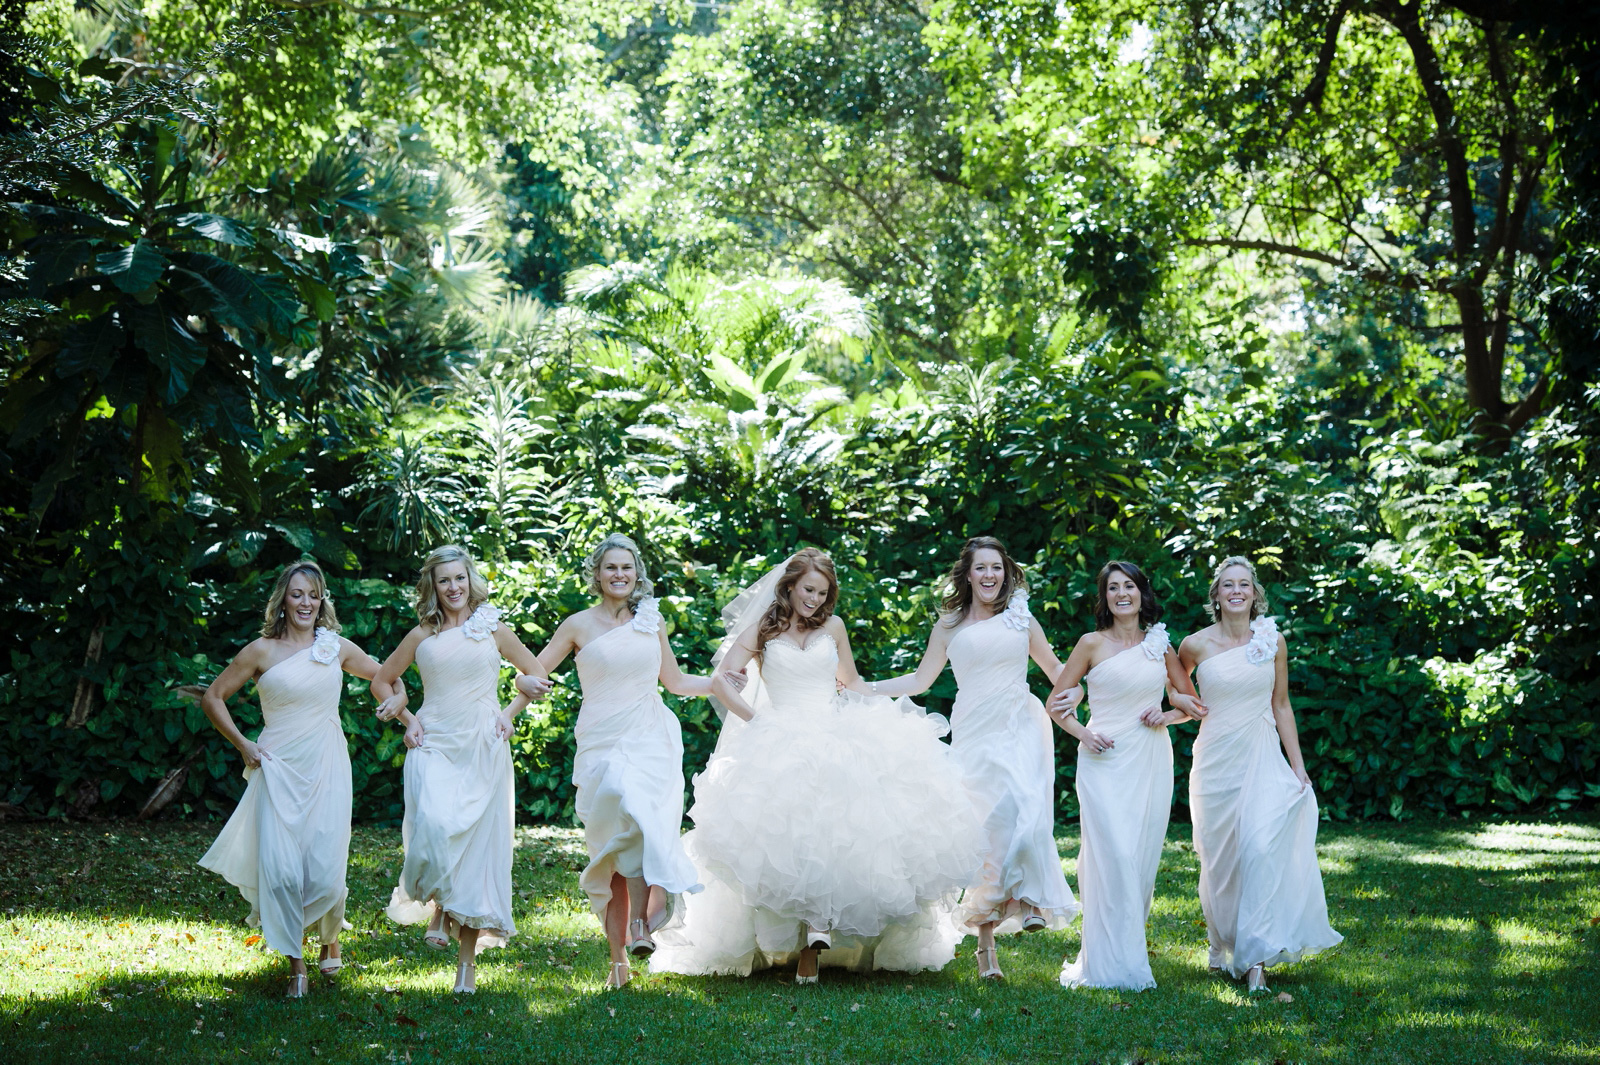 Bridal party in garden